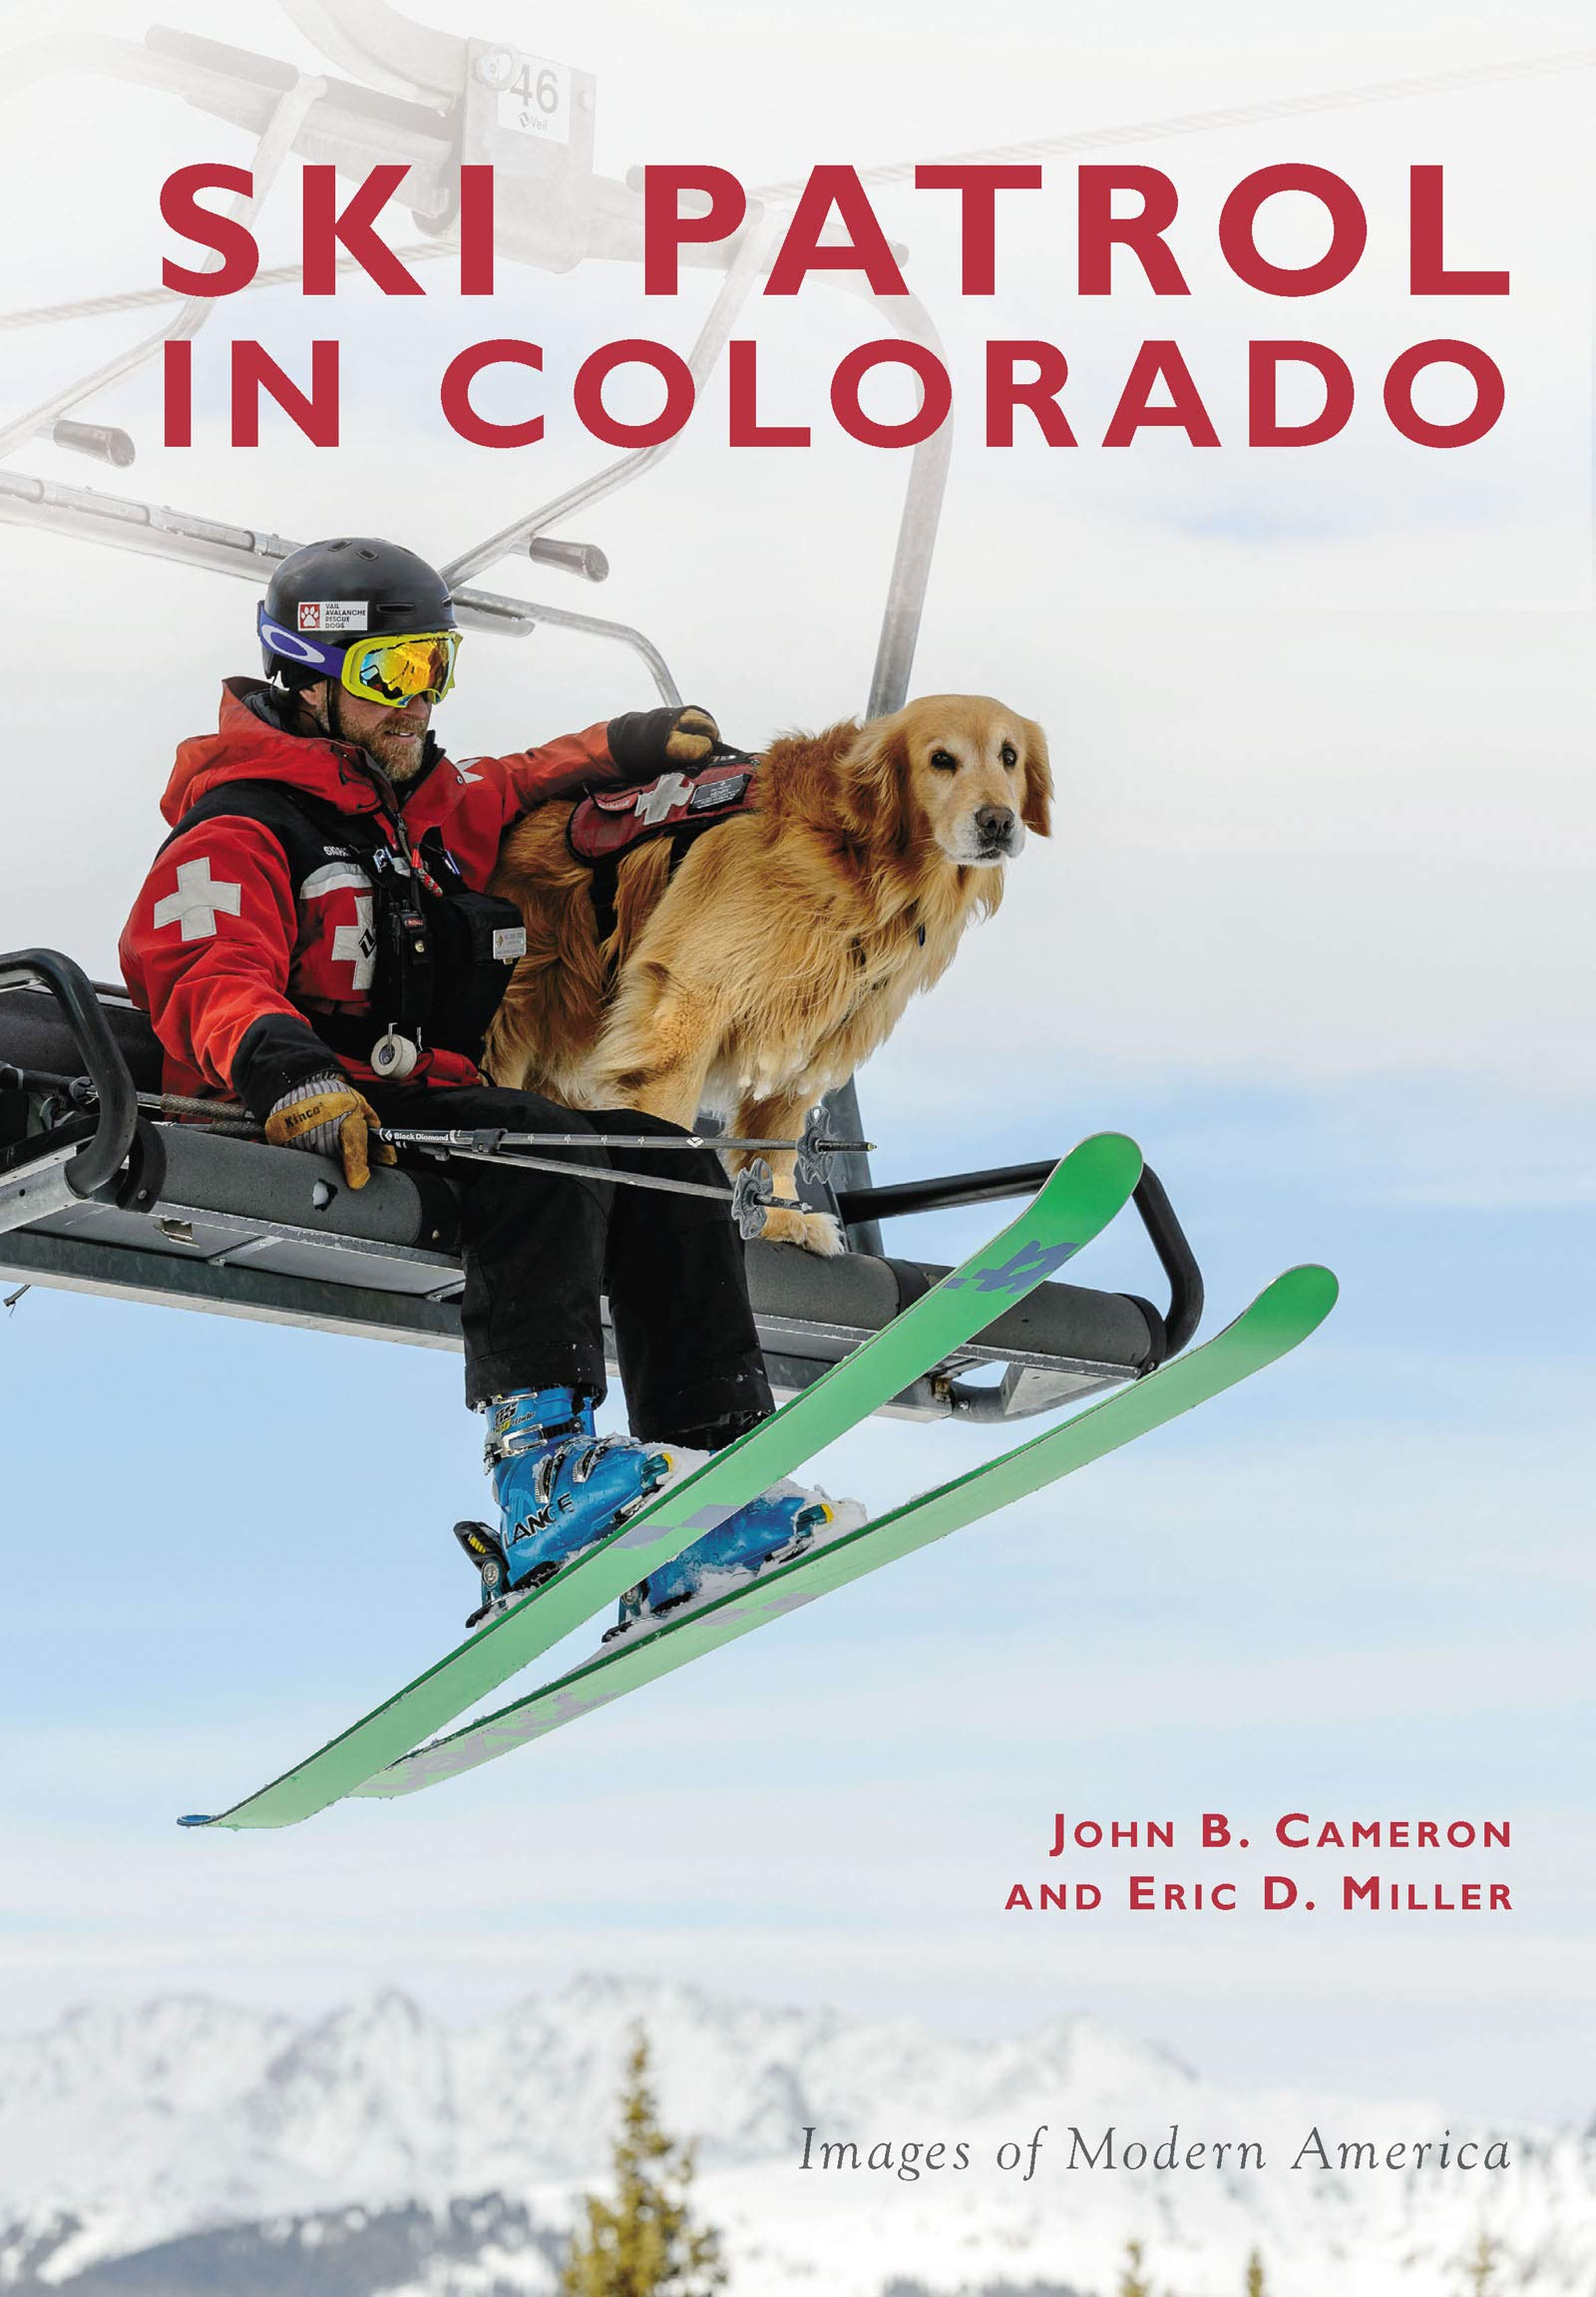 Download Ski Patrol in Colorado (Images of Modern America) (English Edition)